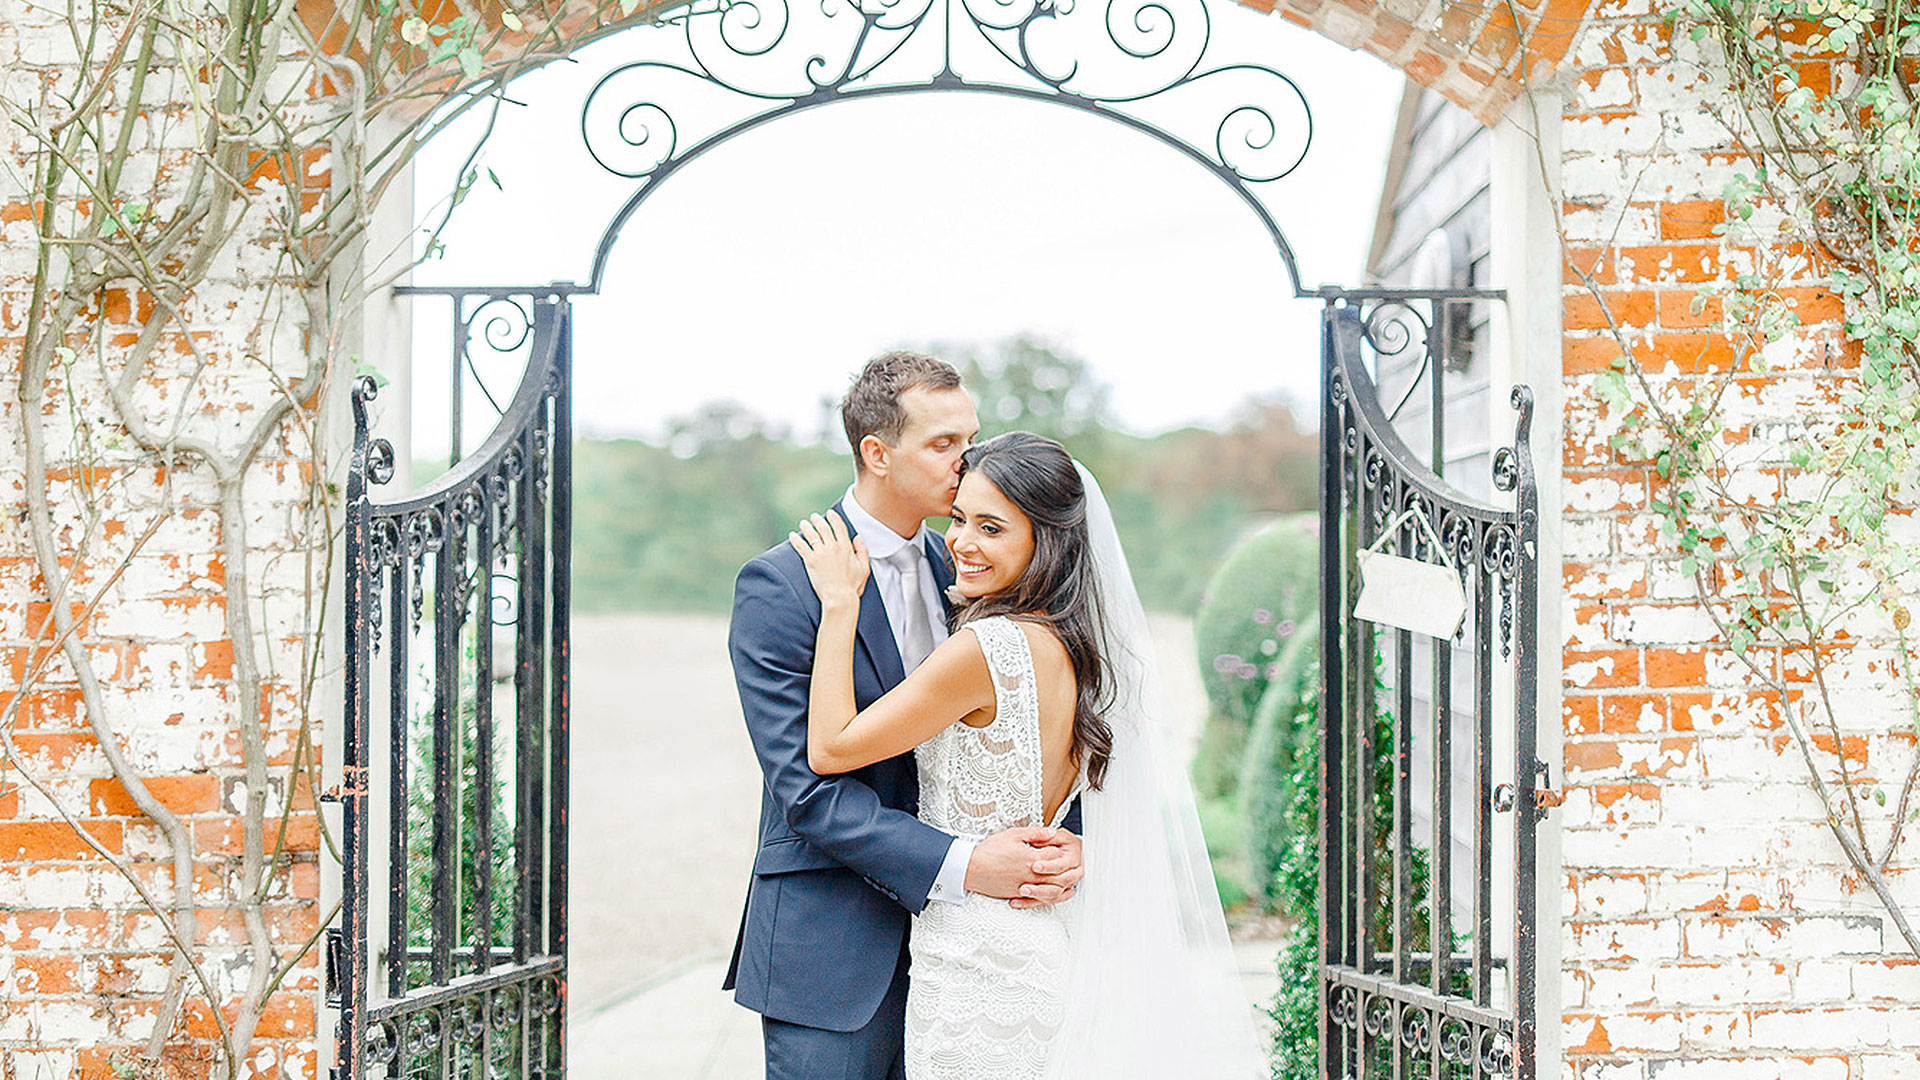 A groom kisses his bride in a special moment at this beautiful wedding venue in Essex - garden wedding